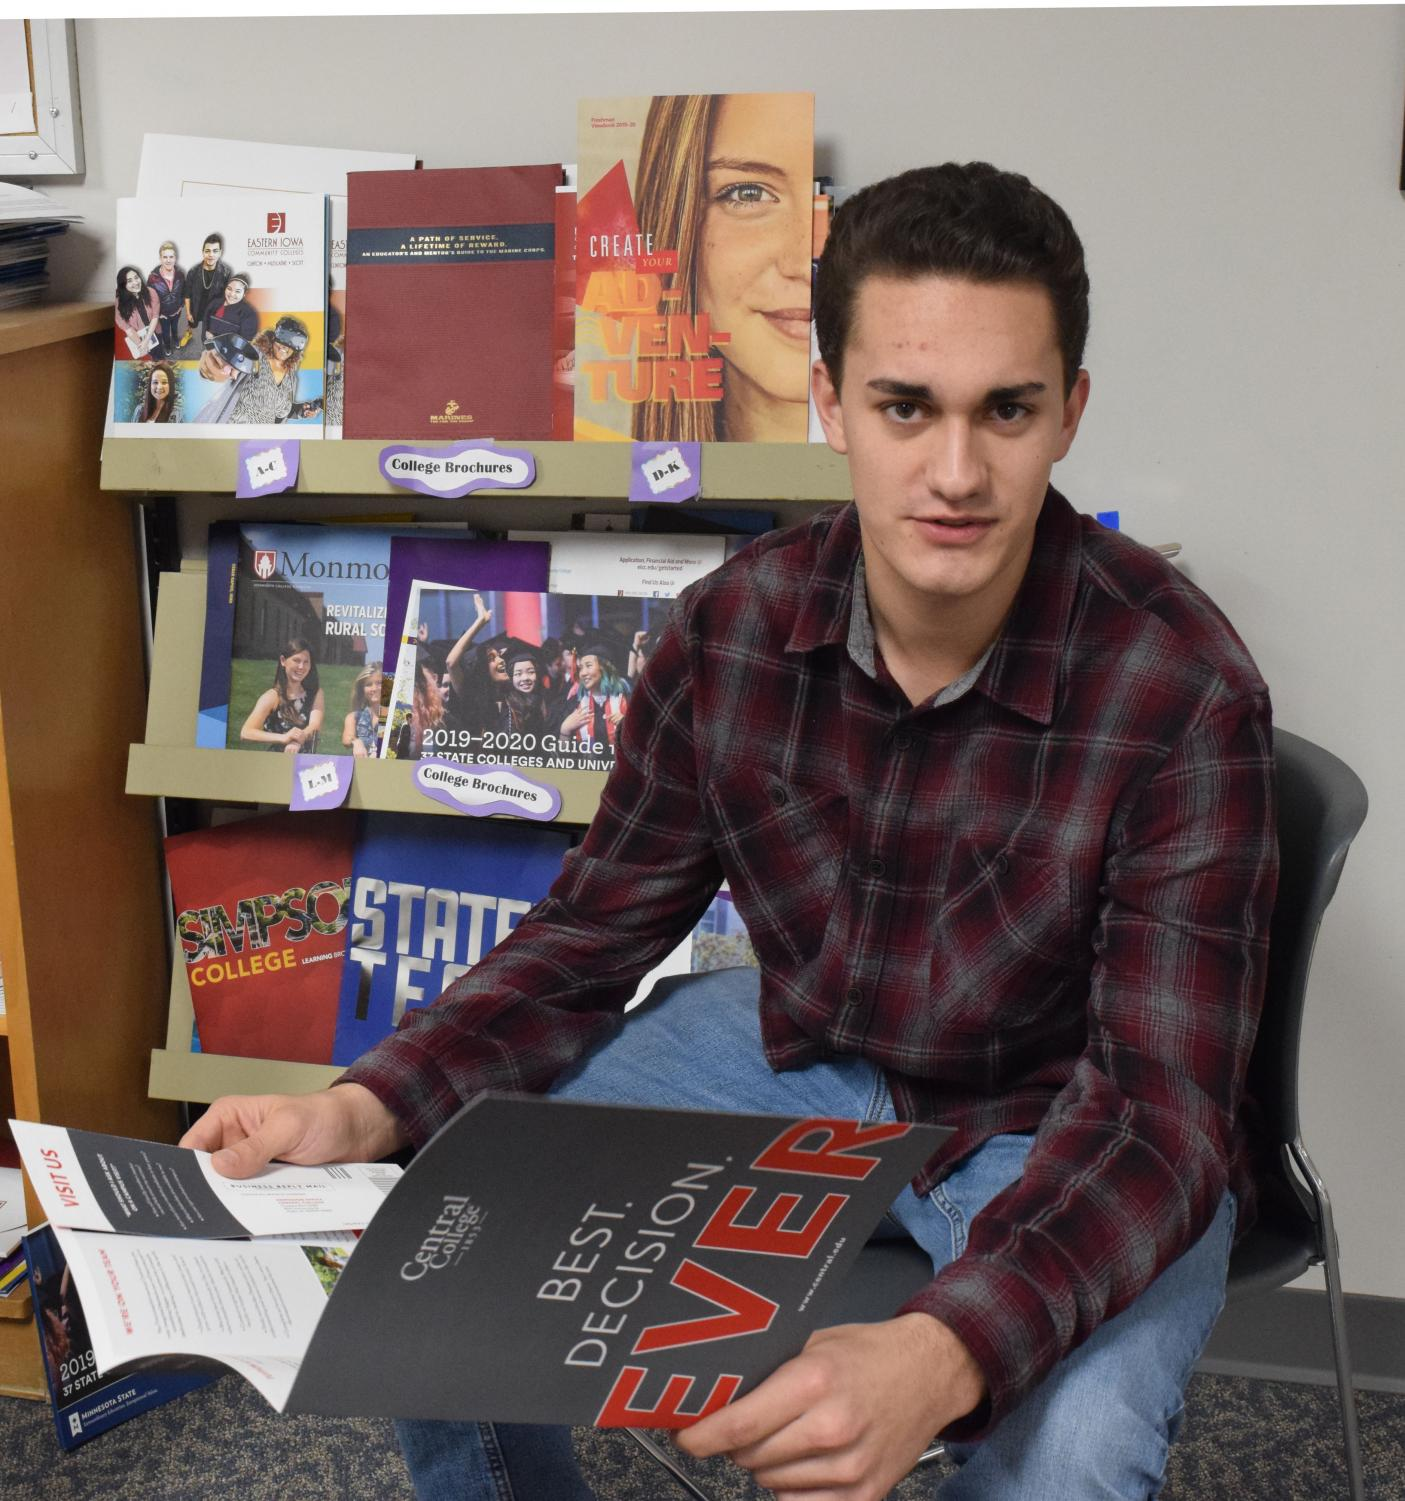 Senior Adam Parcel is serious about applying for scholarships as he inches his way closer to graduation. Parcel has applied for 24 scholarships so far.